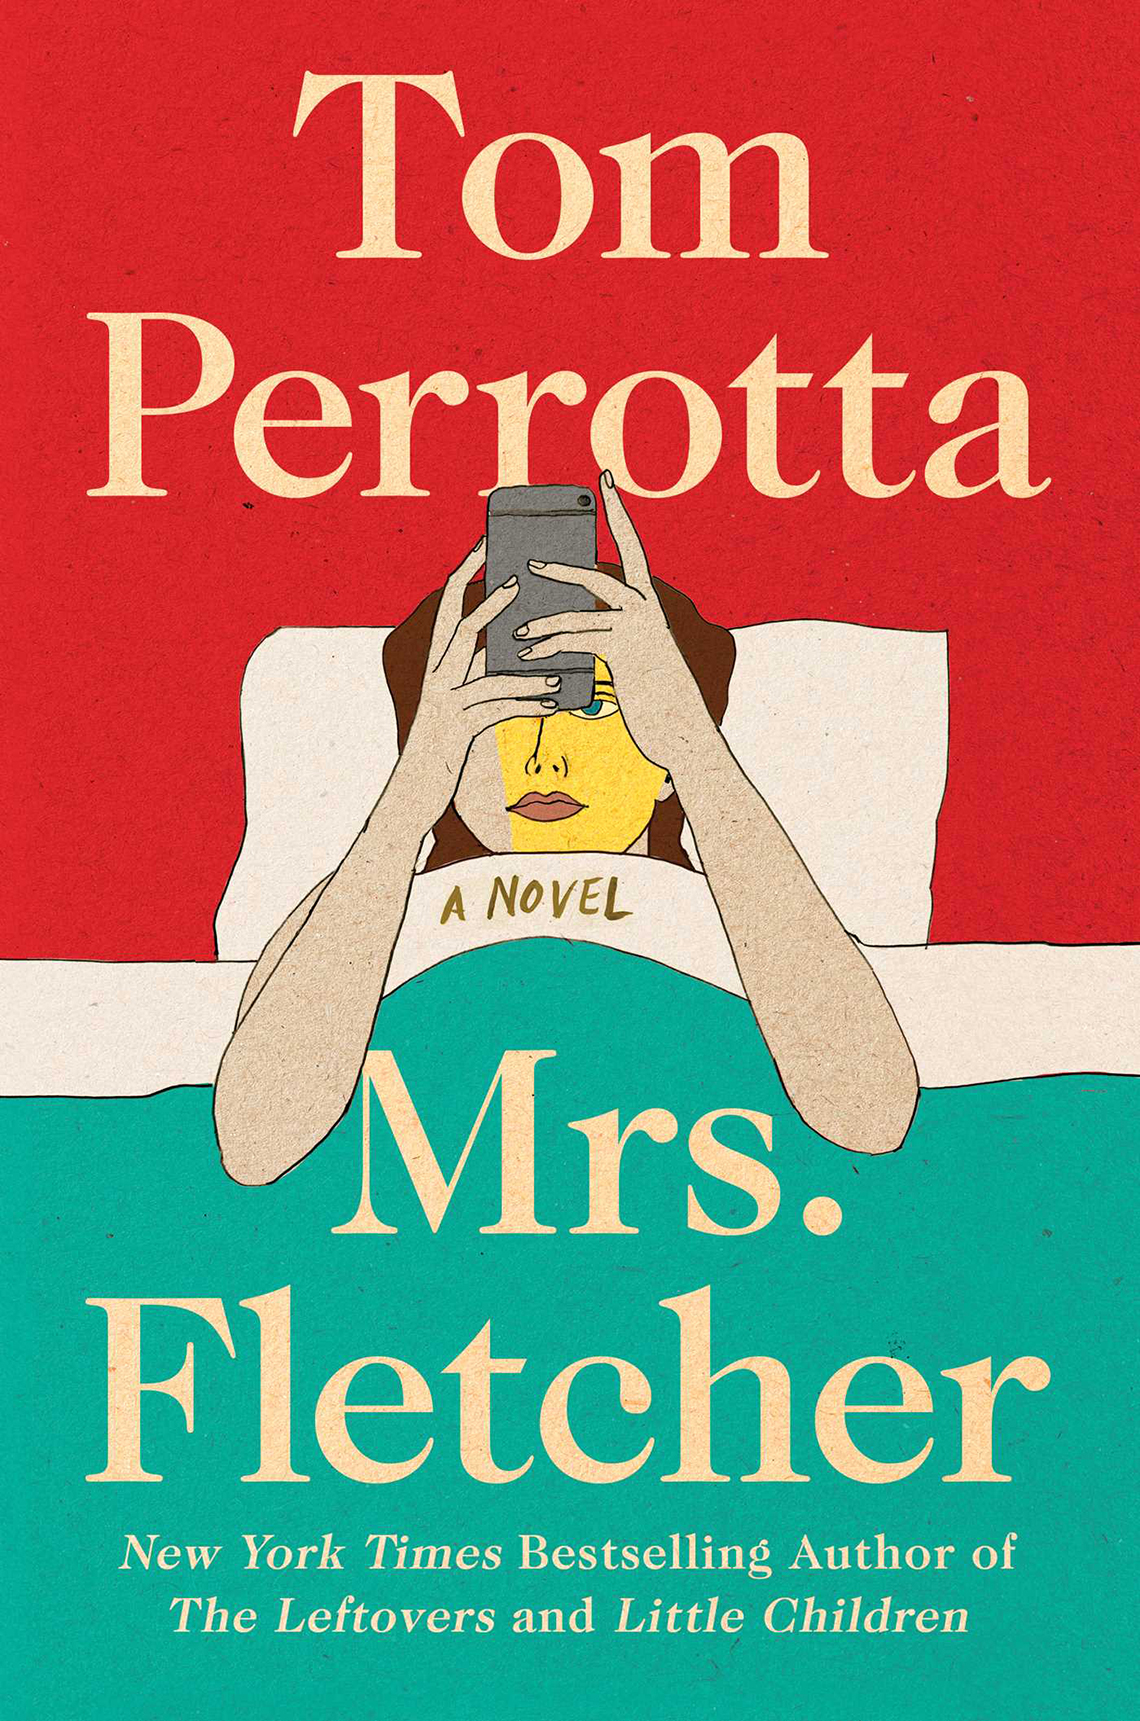 Mrs. Fletcher, by Tom Perrotta